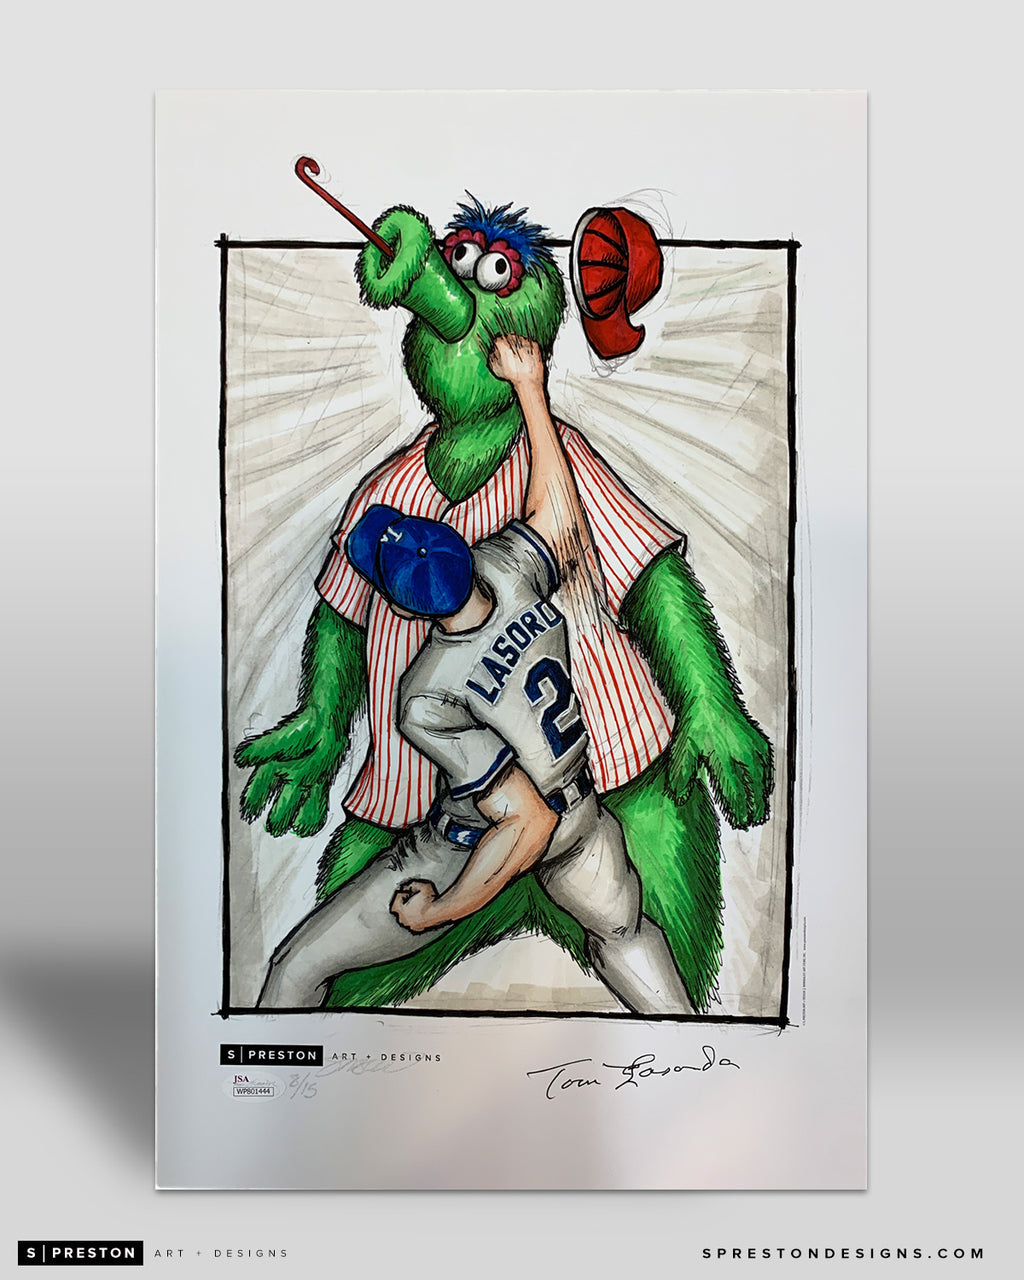 Super LaSorda Punchout Sketch Poster Print - Lasorda Signed - JSA Authentication